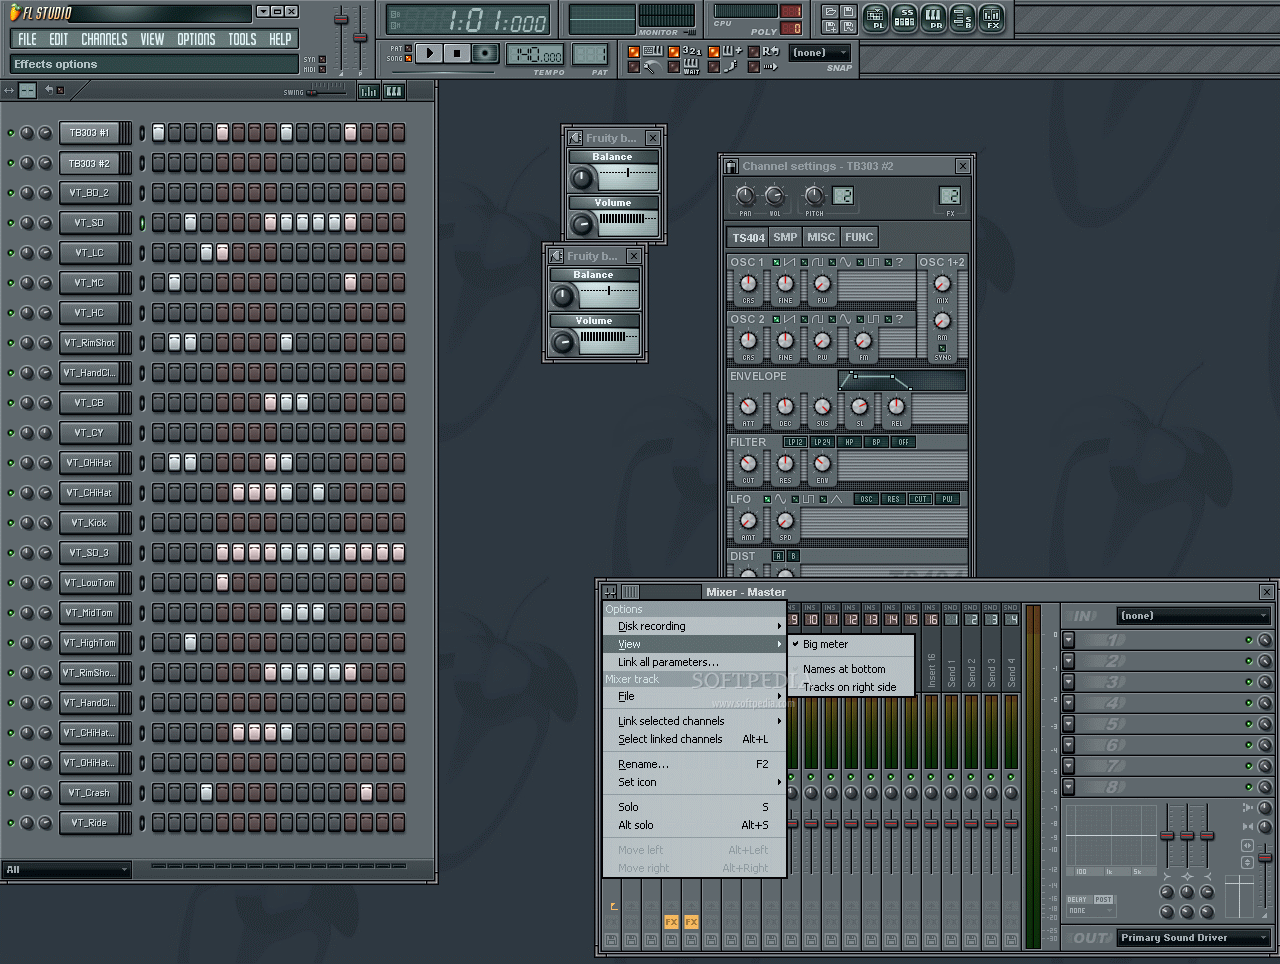 Getting this message in fl studio 6. Image-line.